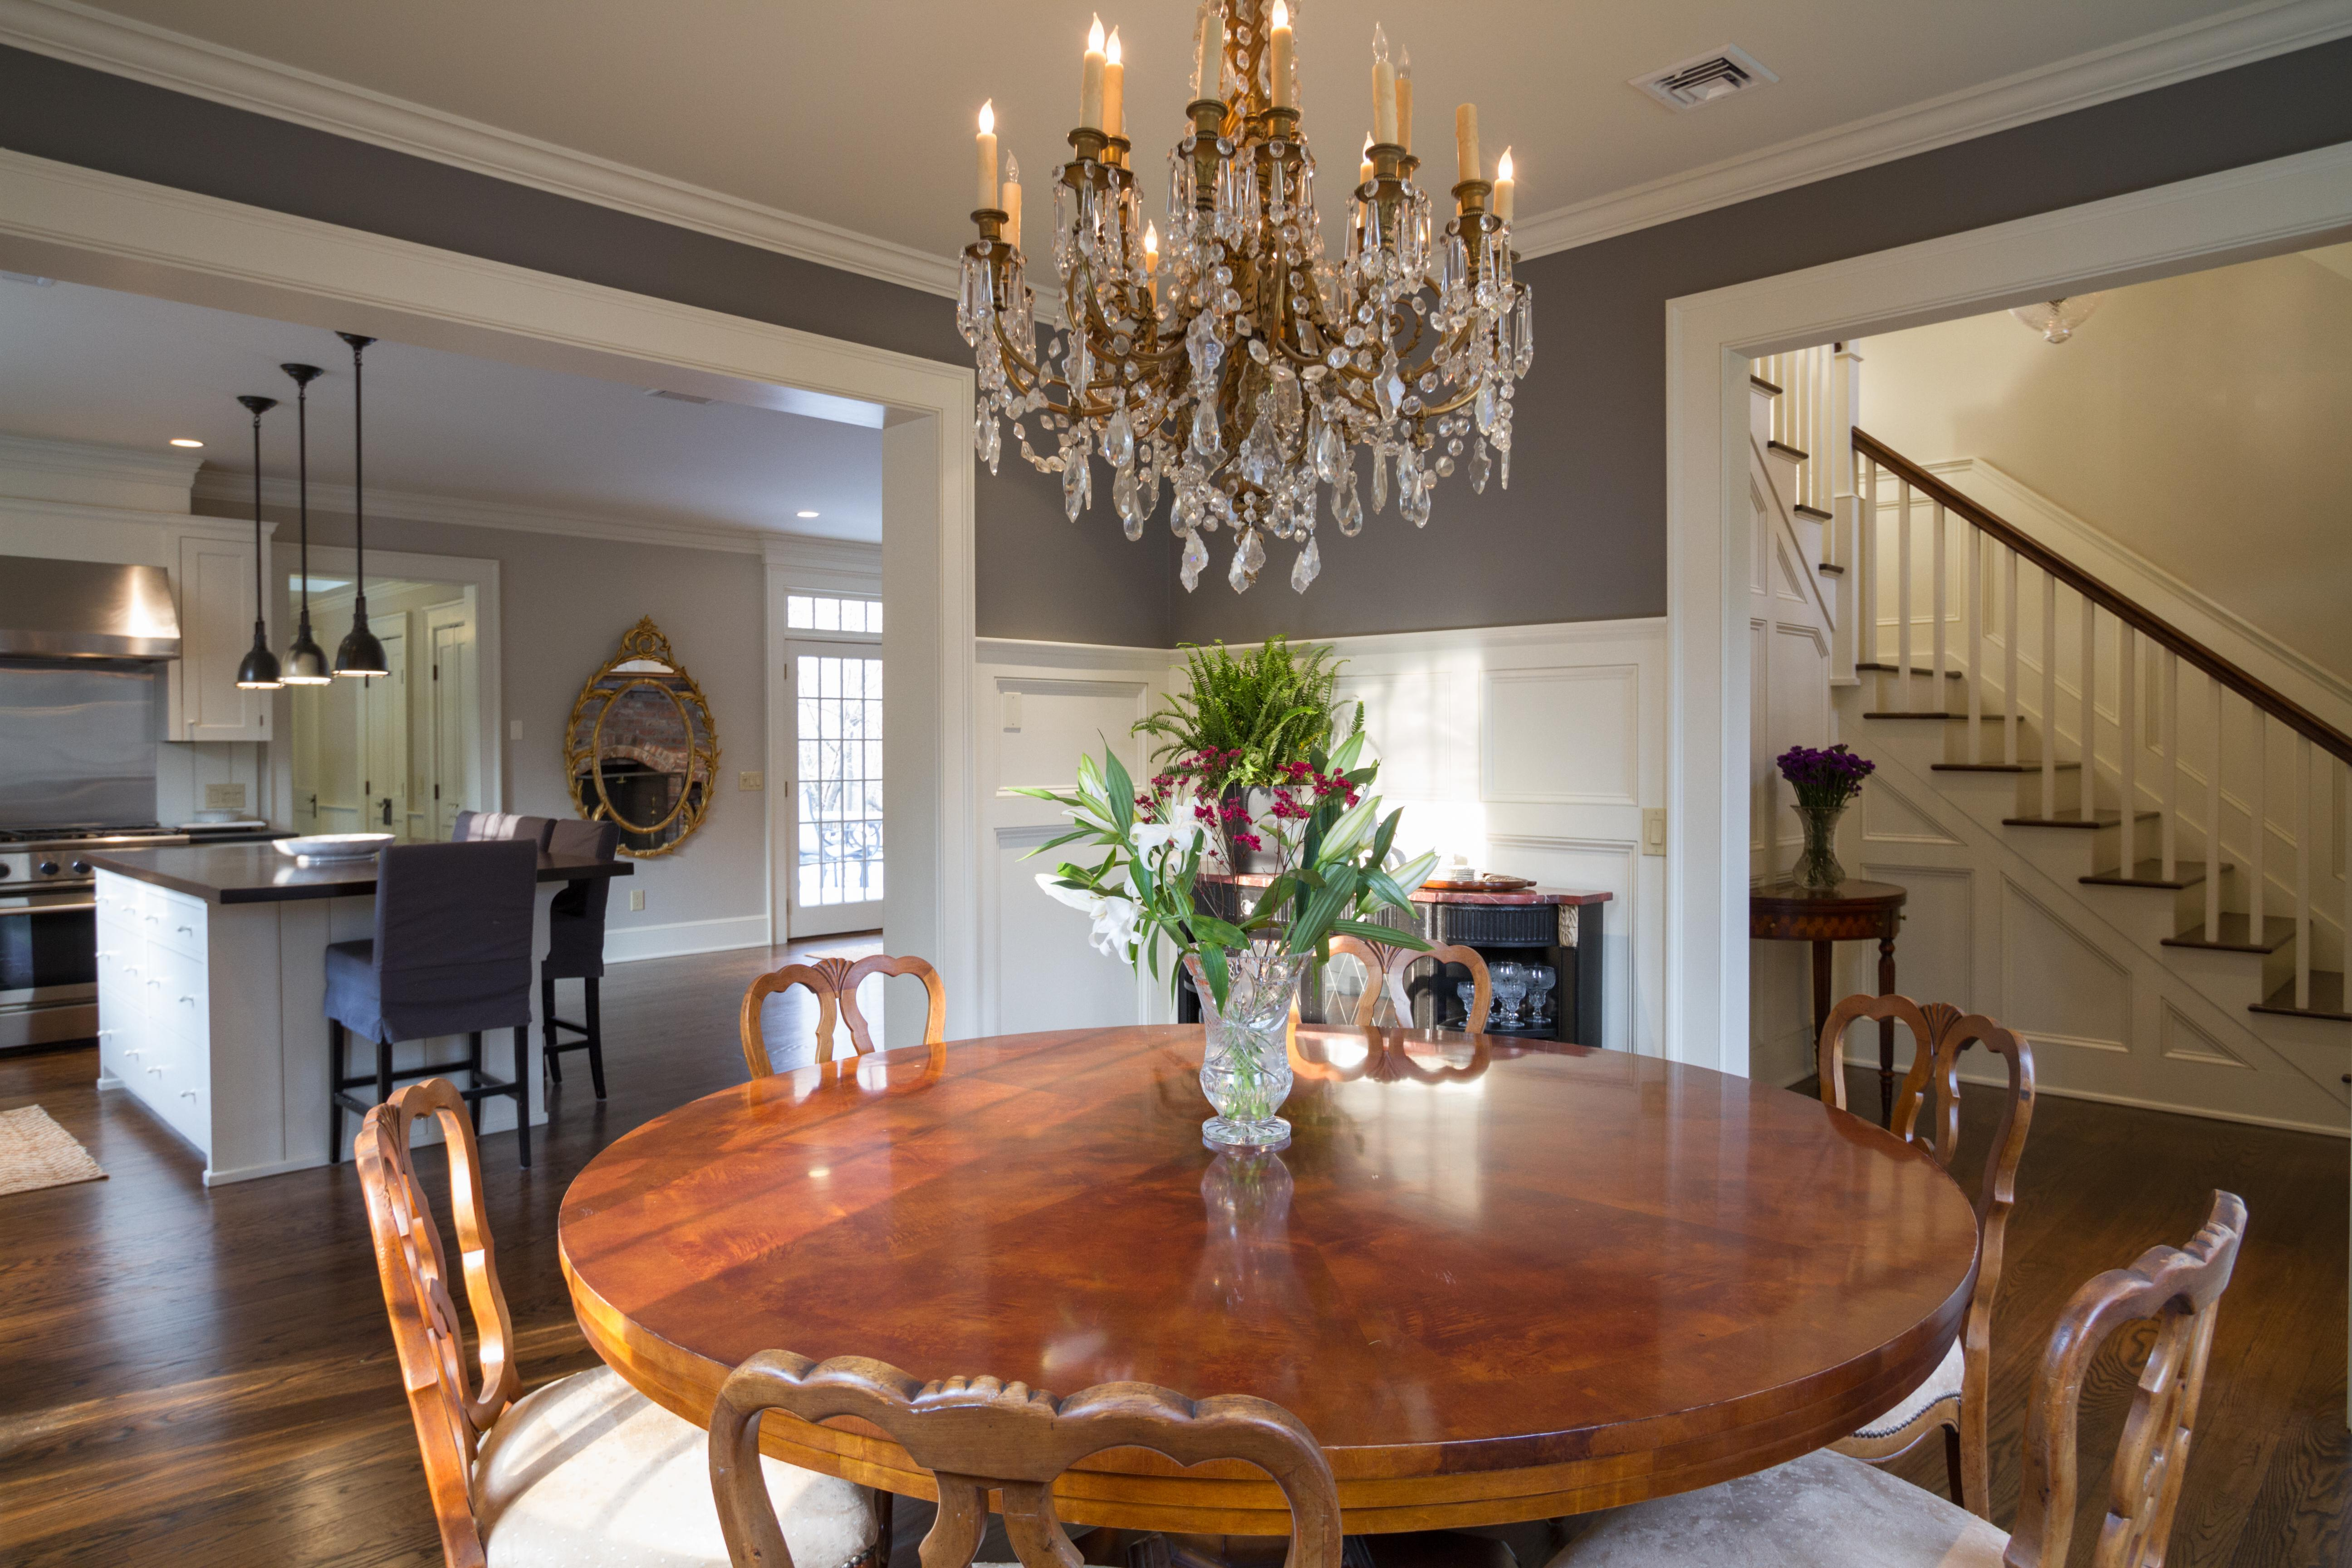 72 Round Burlwood Dining Table With Pedestal Base Chairish